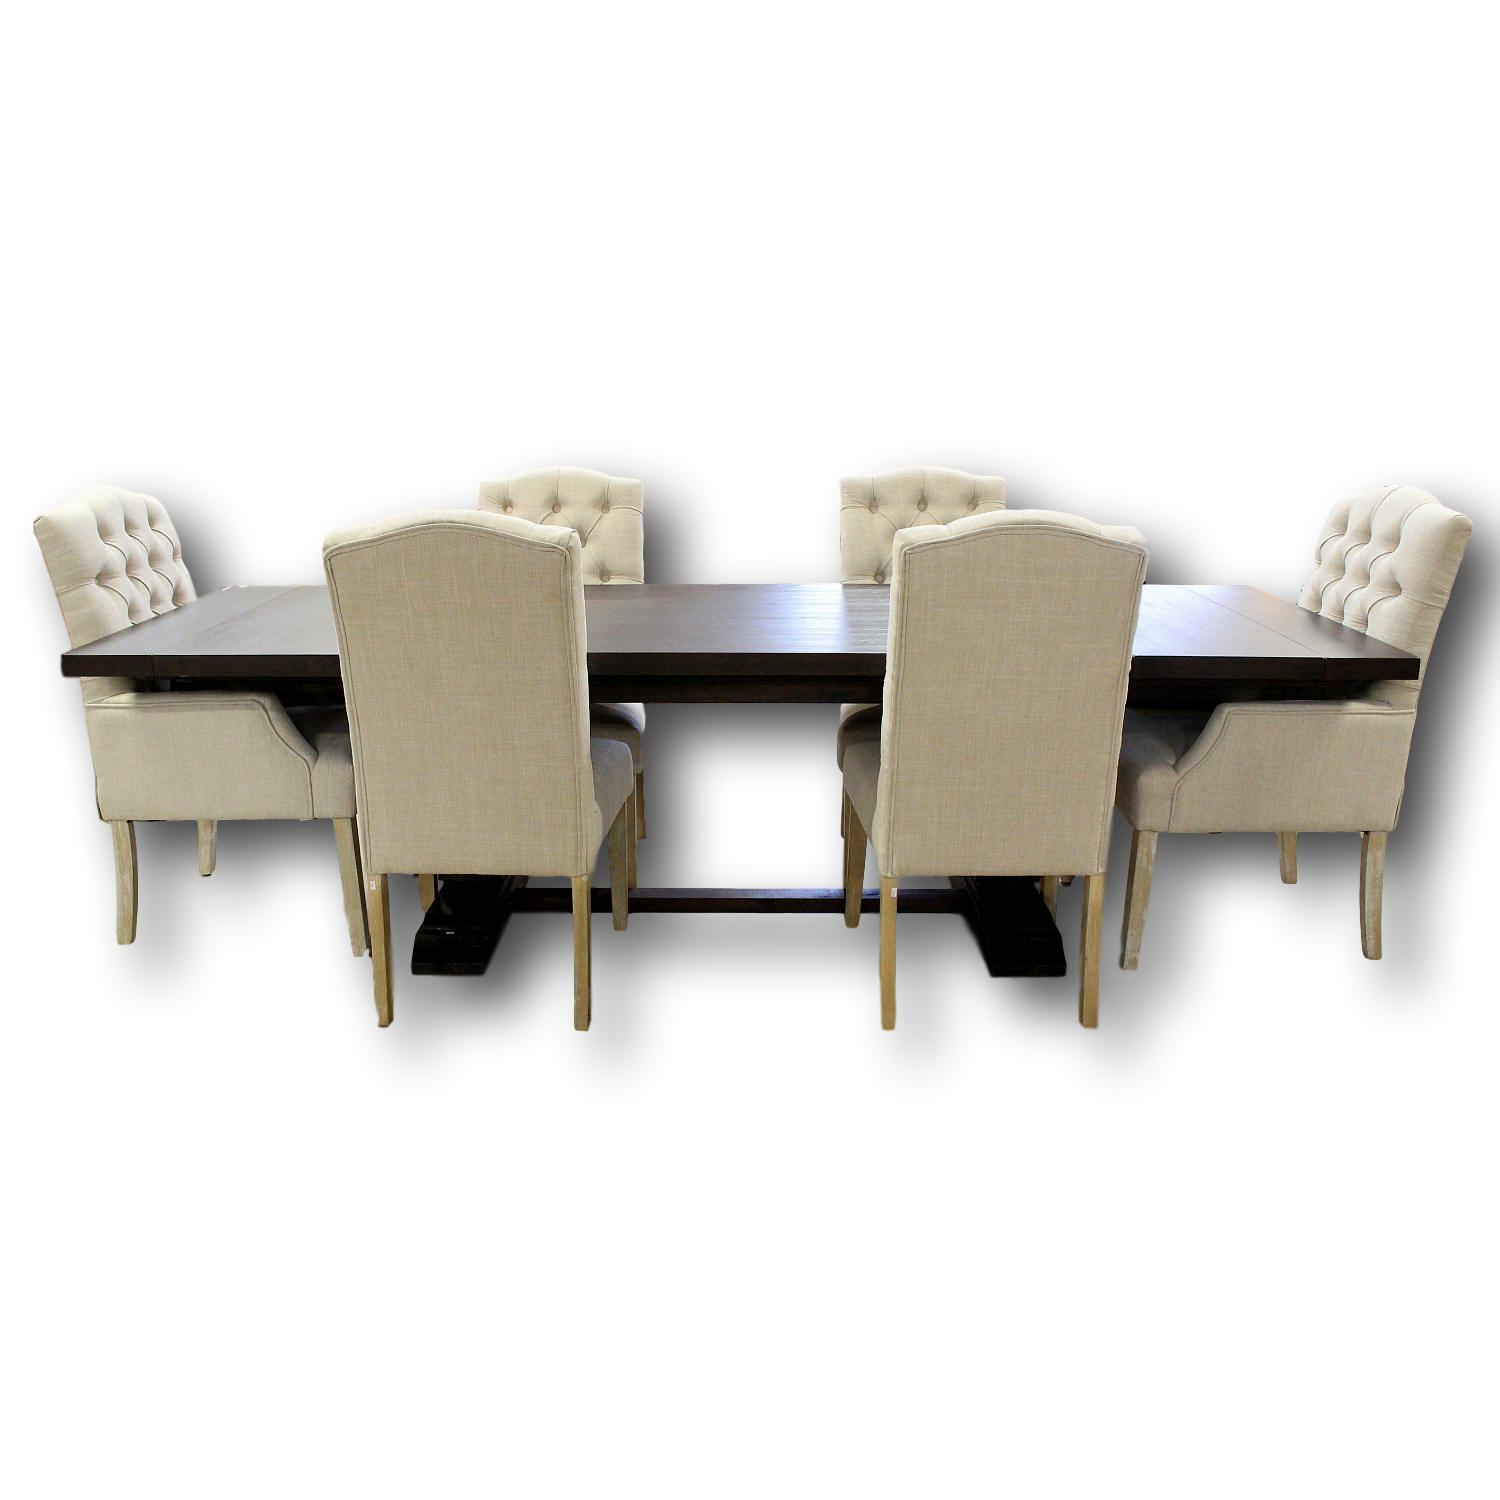 Traditions-Dining-Table-w6-Chairs_83568A.jpg